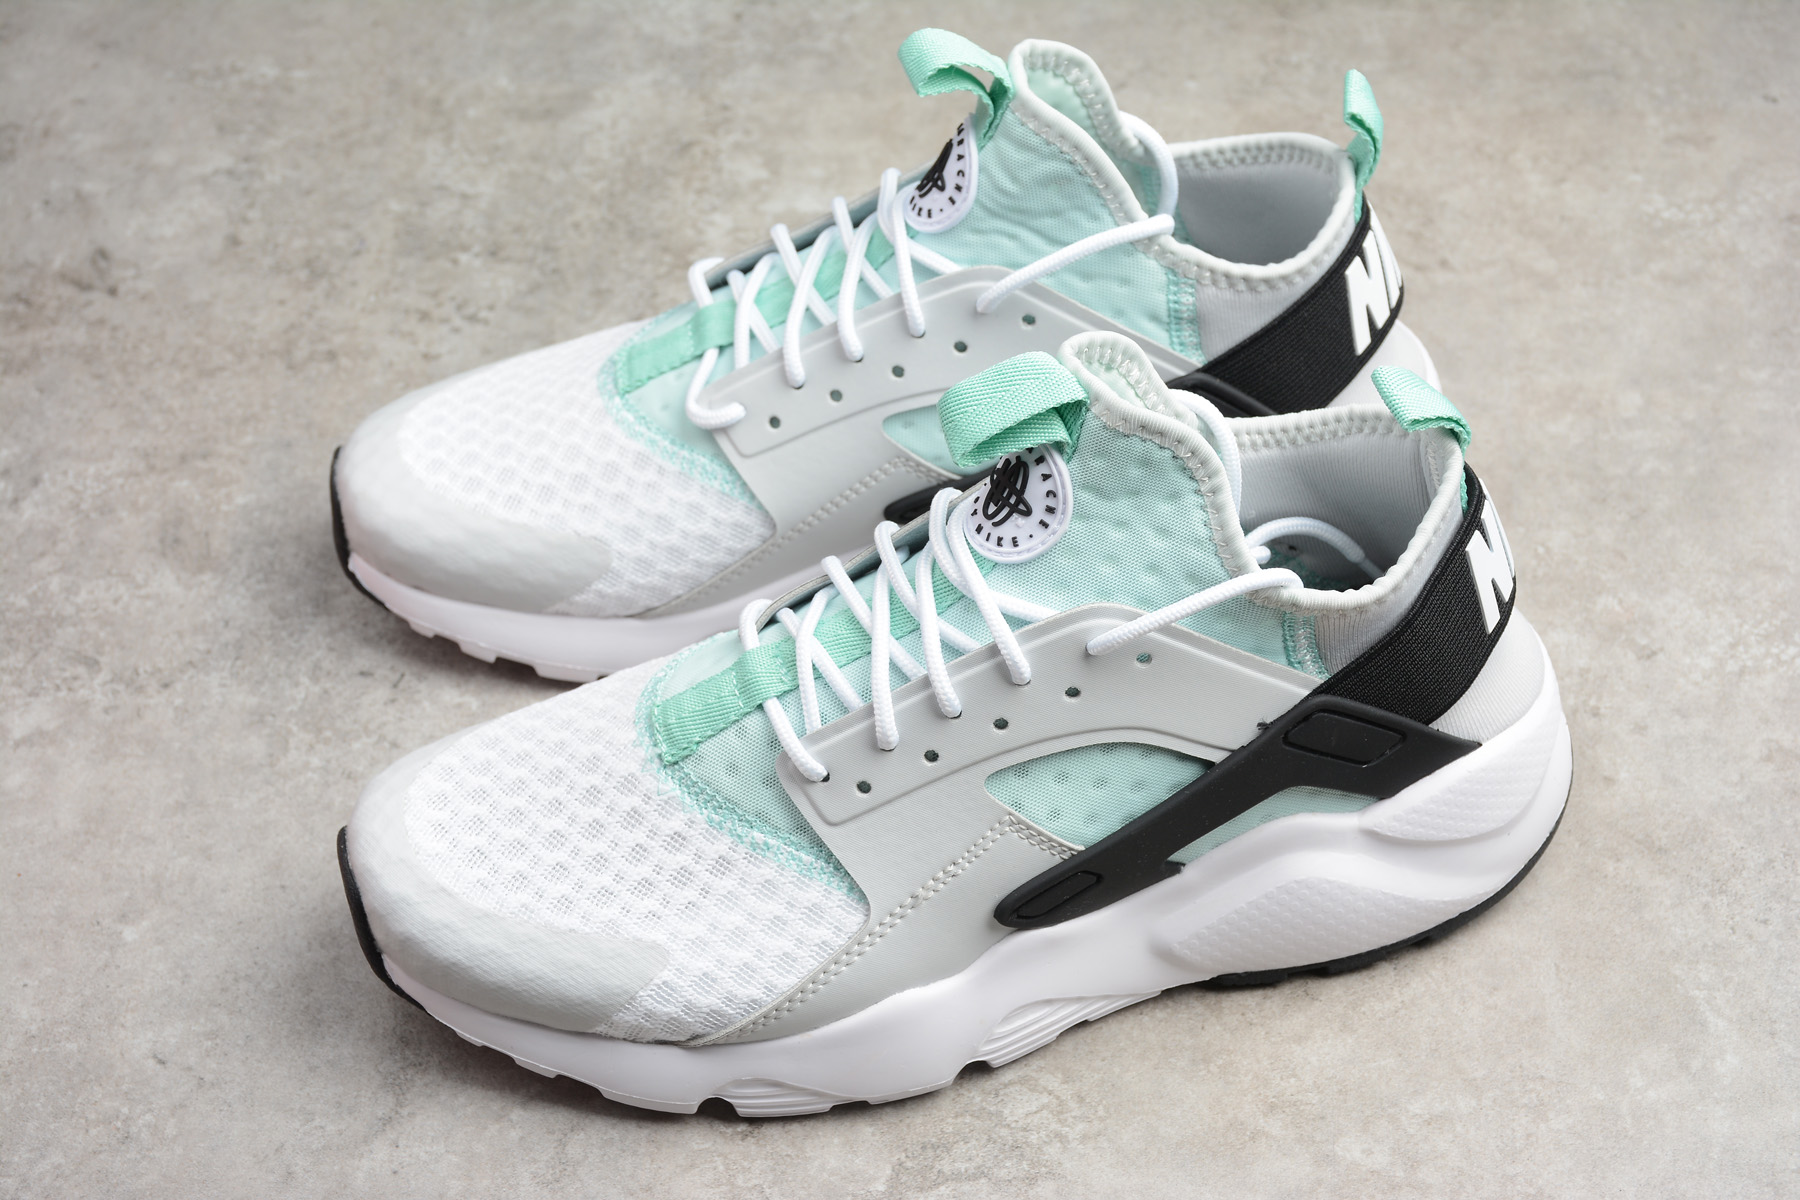 25d095b015f9 2018 nike air huarache run ultra pure platinum black igloo